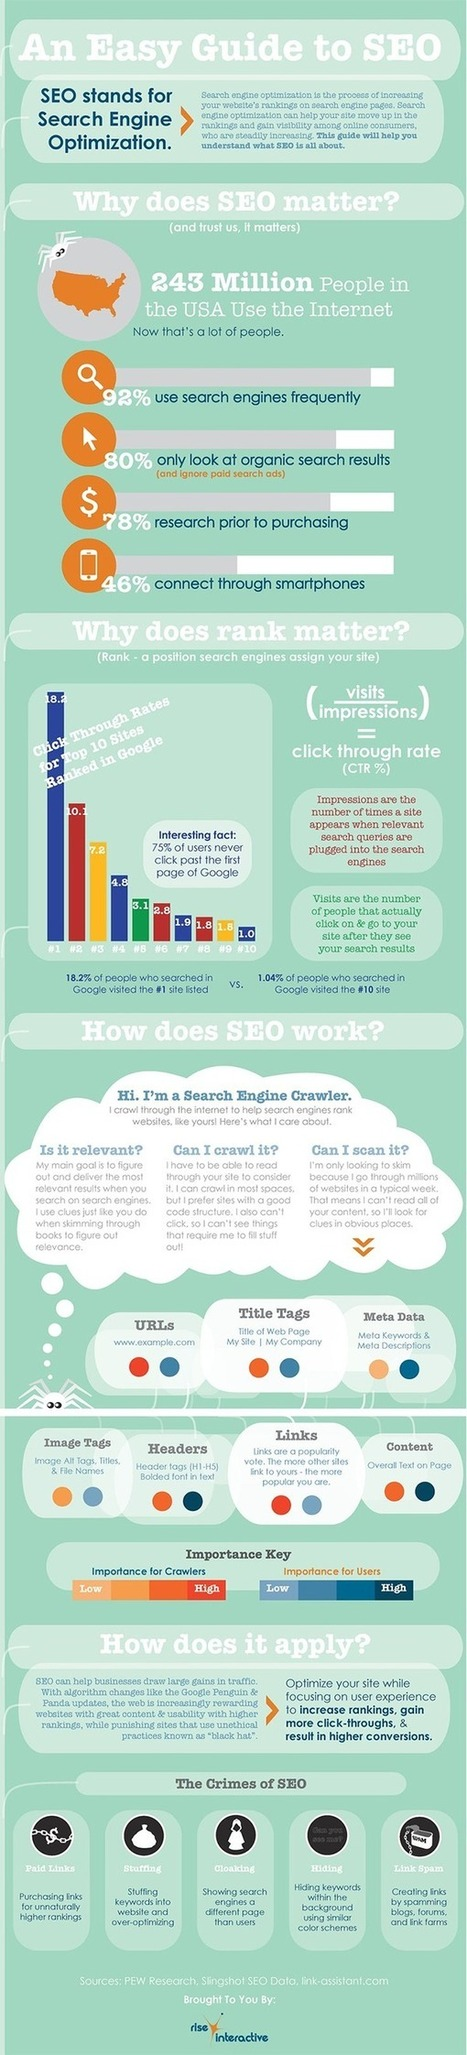 SEO, Simplified: What it Is, Why it Matters & How it Works | Business | Scoop.it